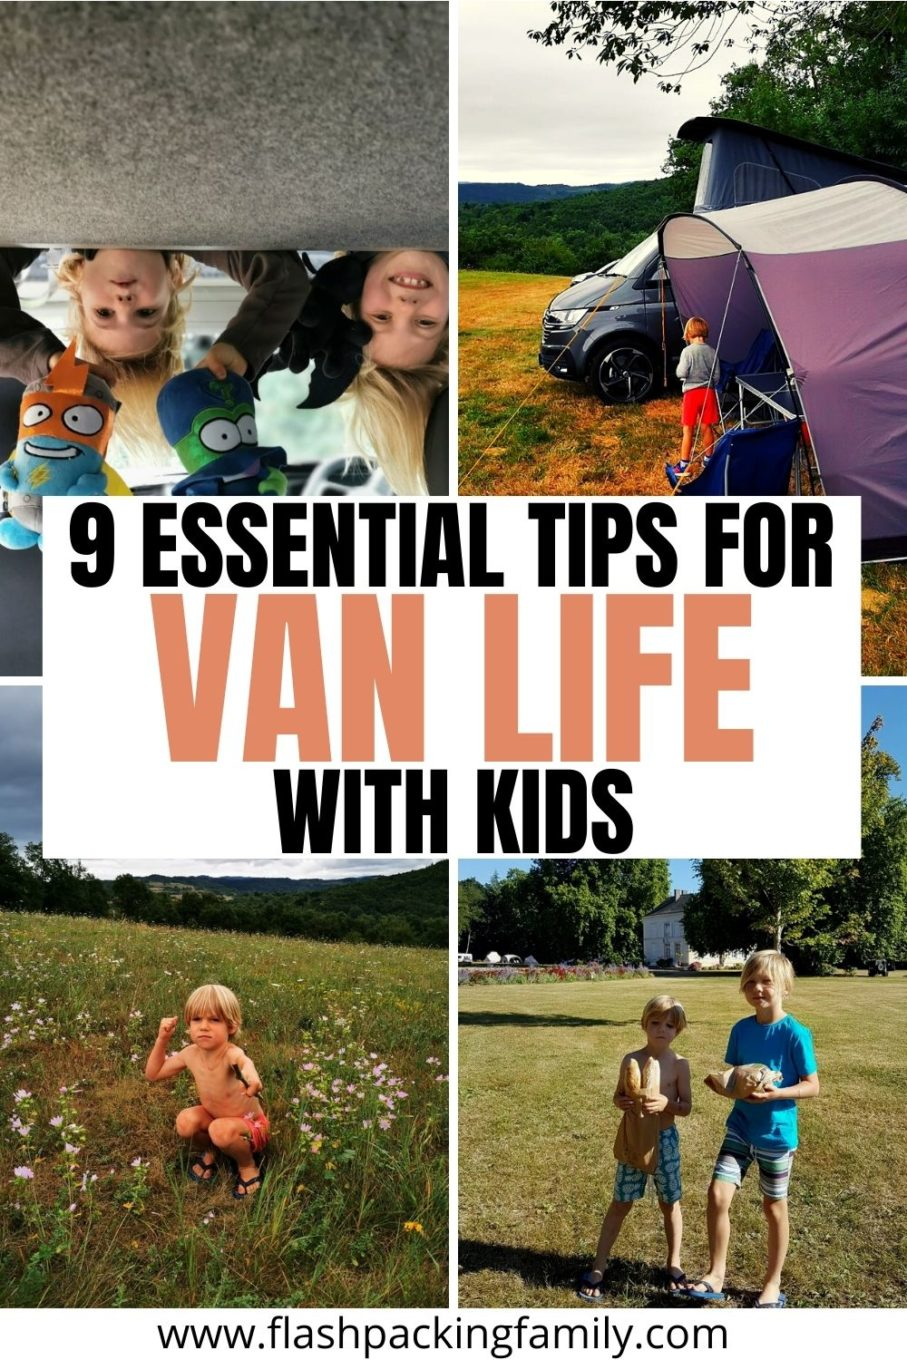 9 Essential tips for Van Life with kids.